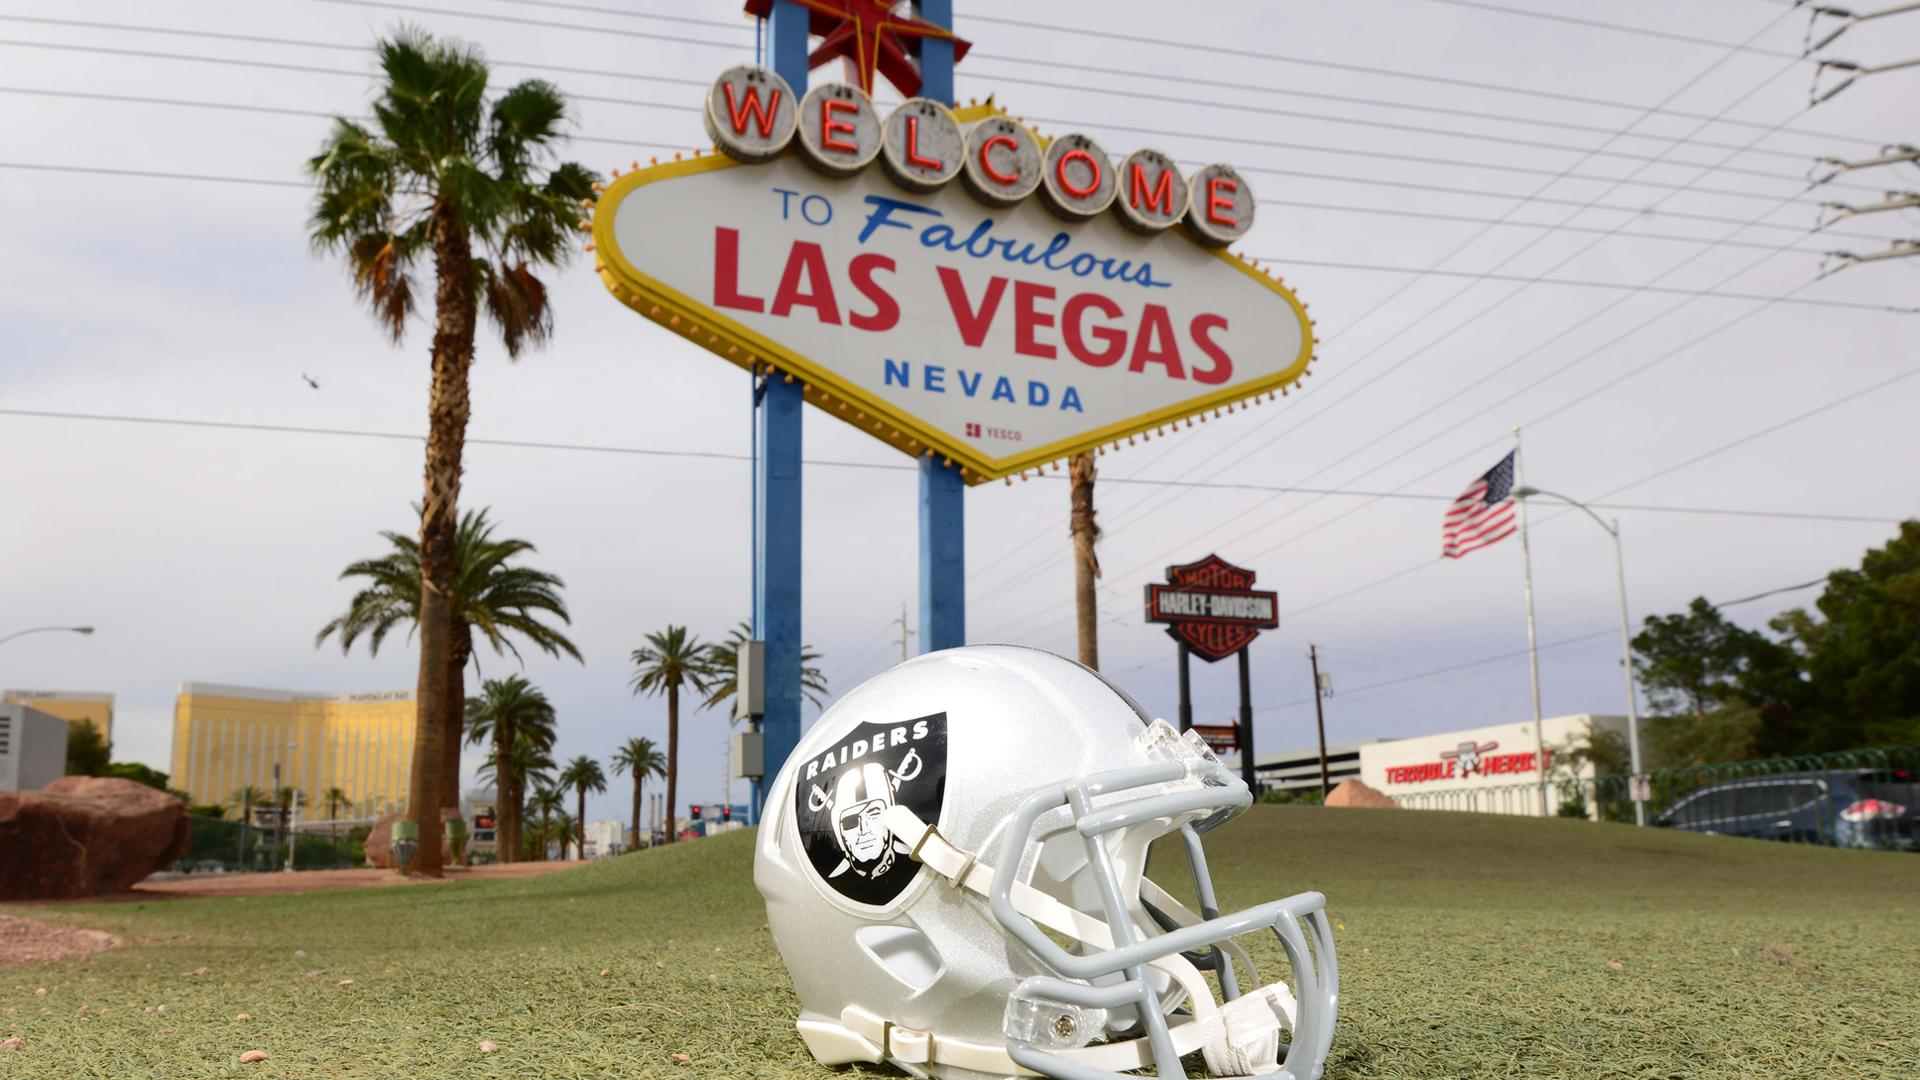 Las Vegas Raiders Formally Announce Name Change Dropping Oakland